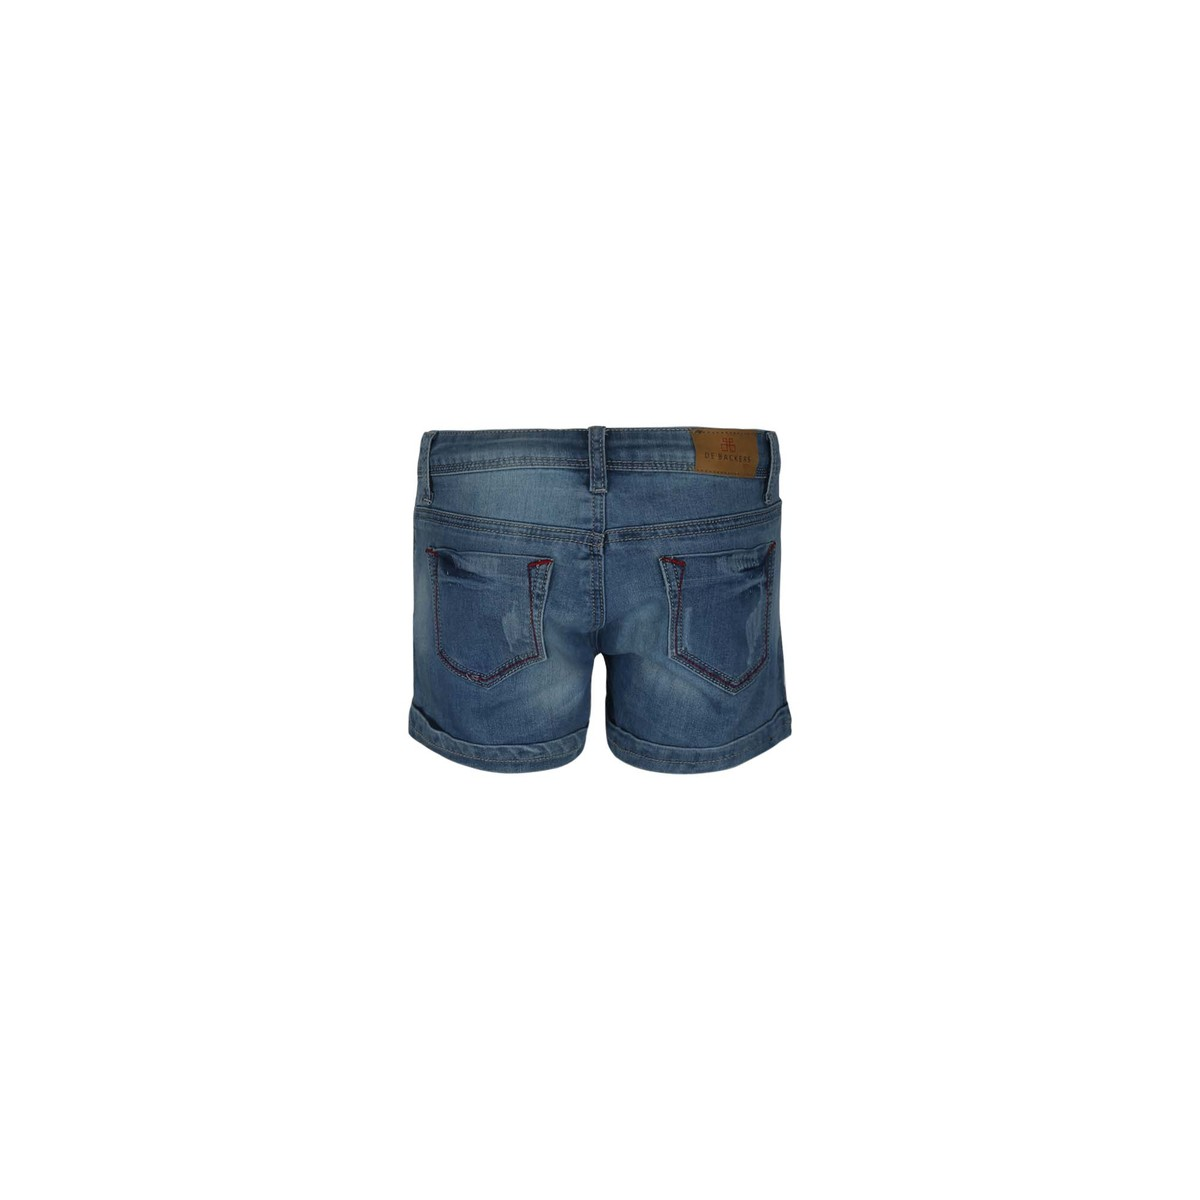 Debackers Girls Denim Shorts 23-28 S01B 23